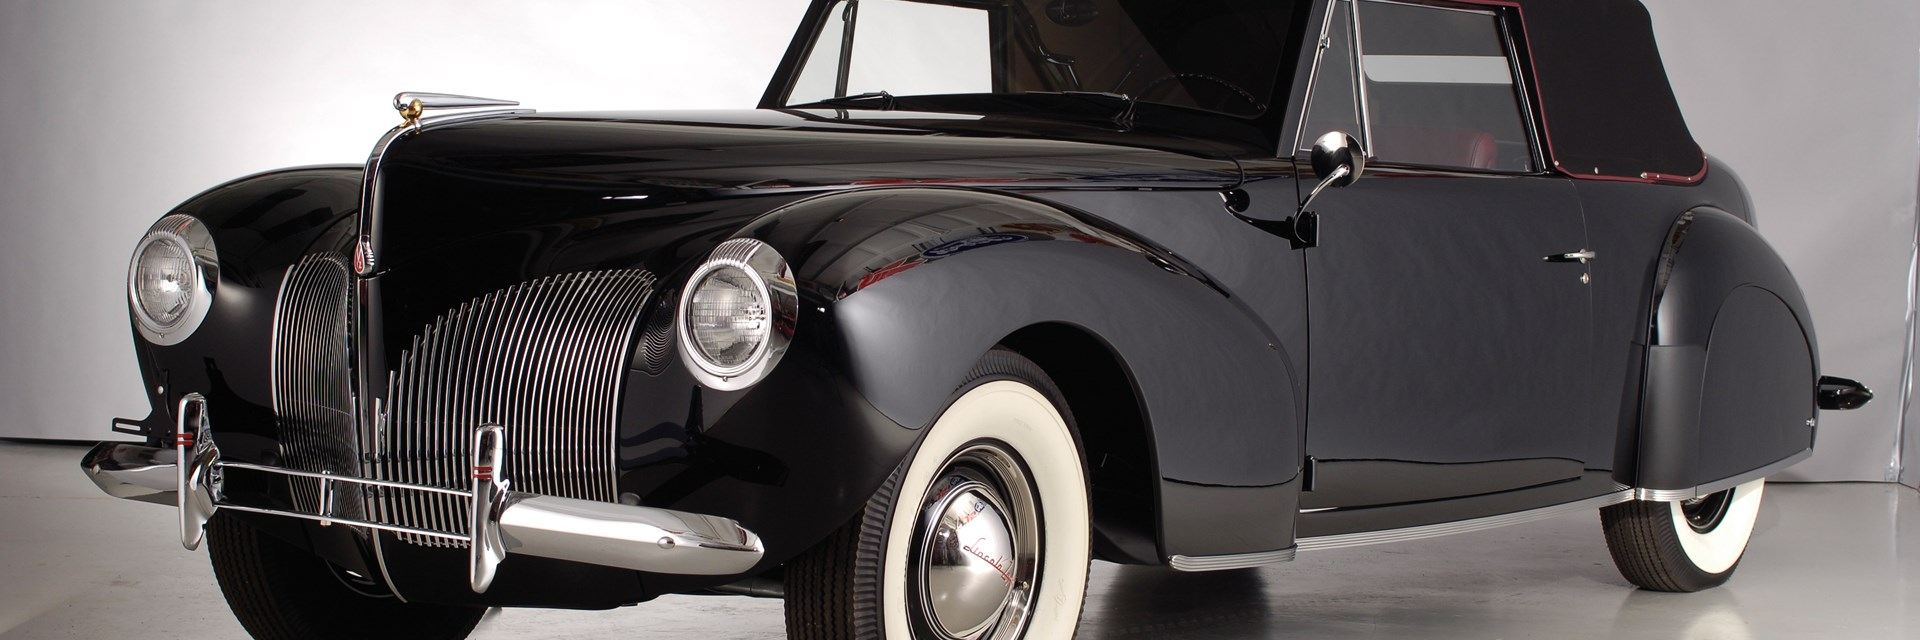 The Dingman Ford Collection